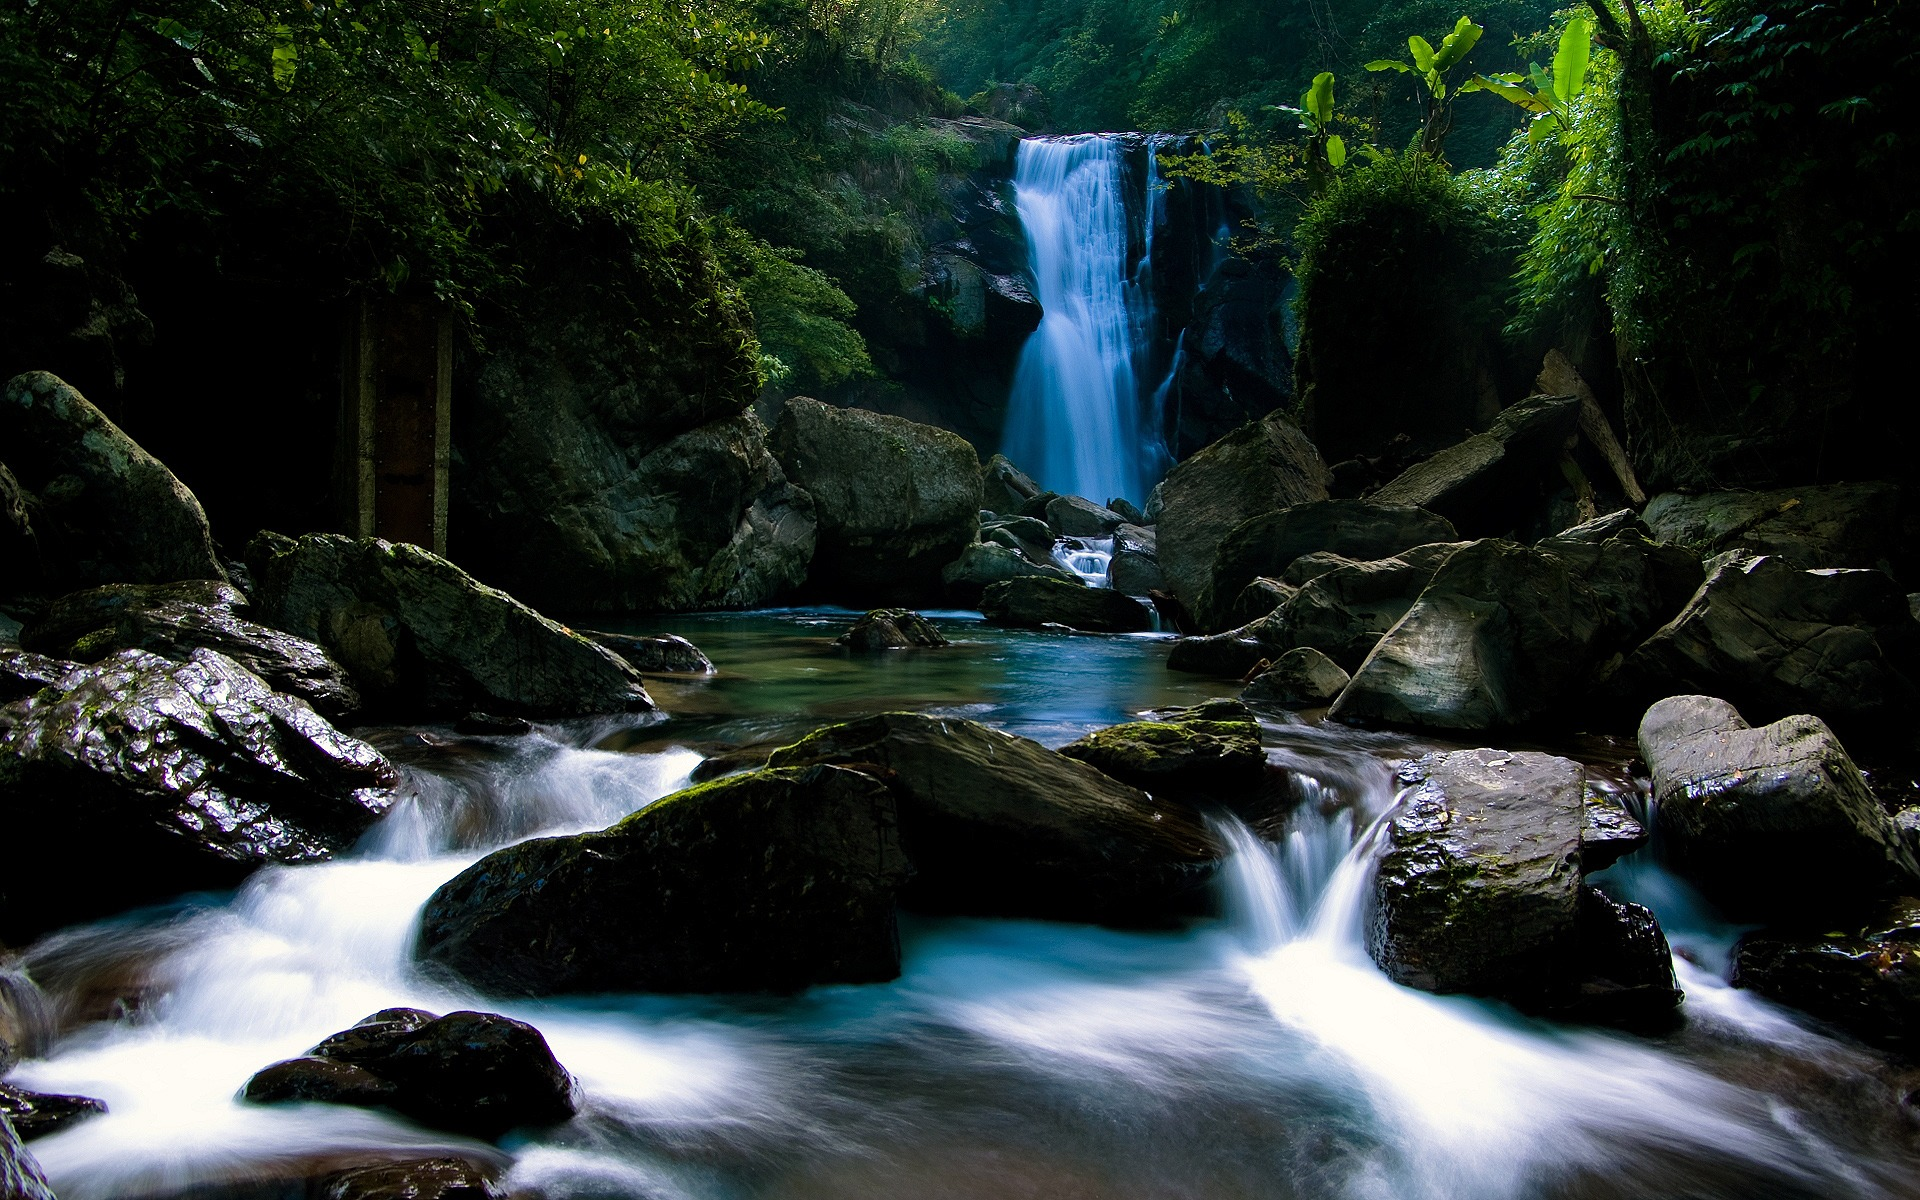 Wallpaper Of Waterfall